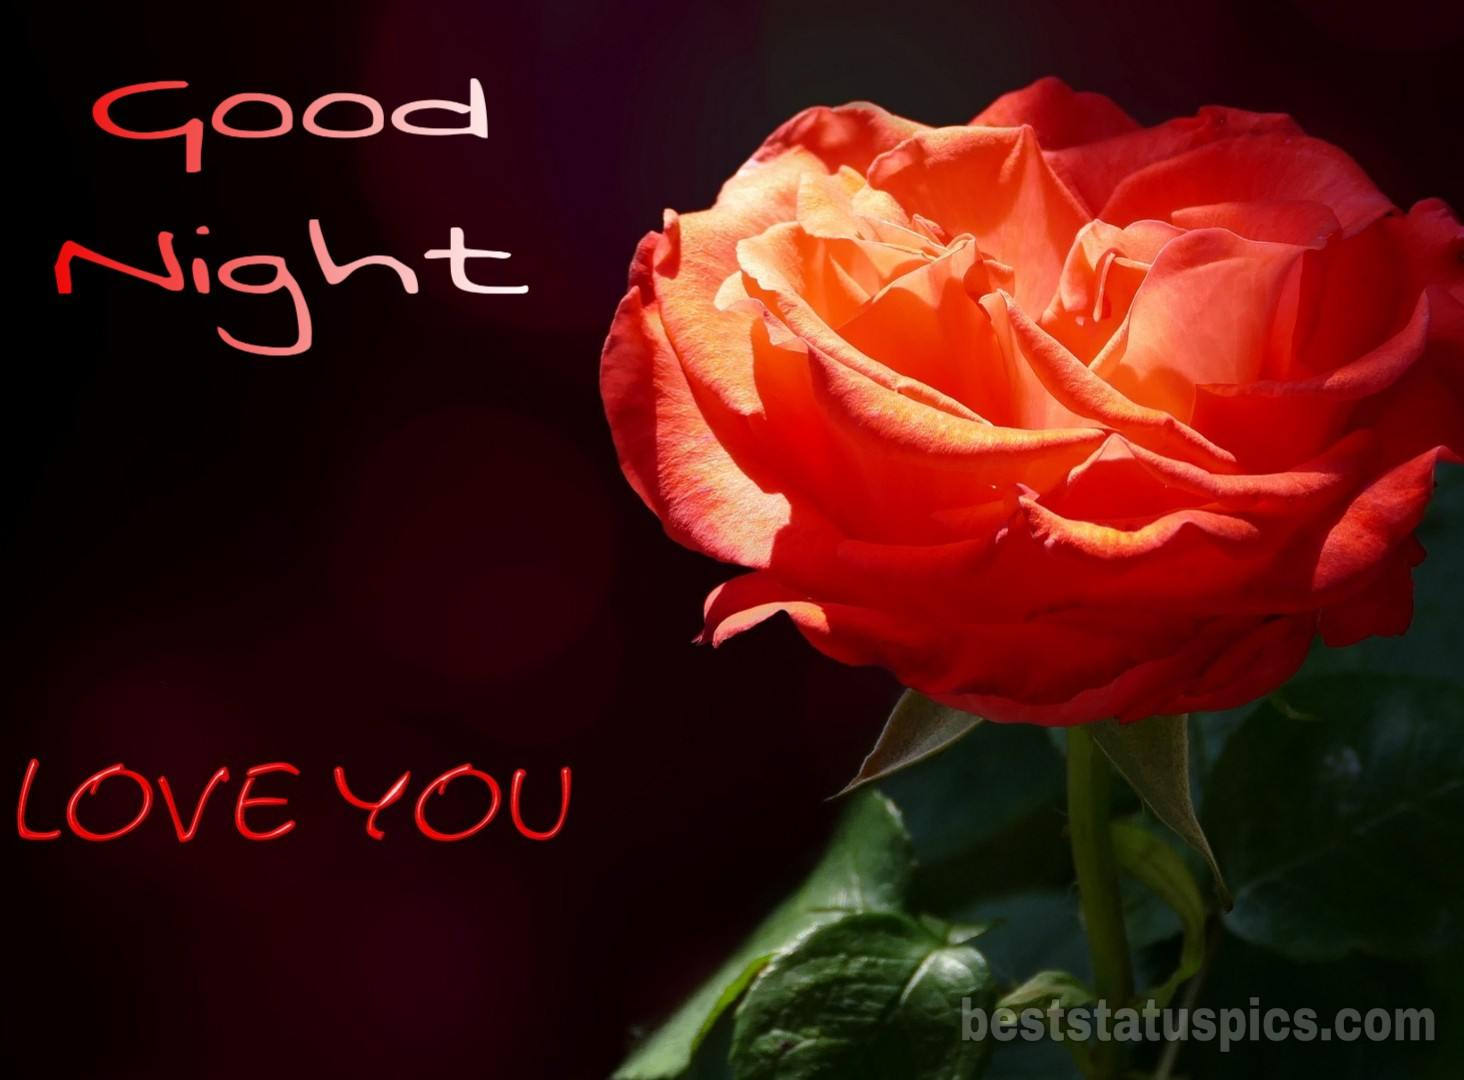 121 Good Night I Love You Images Hd Free Download Best Status Pics